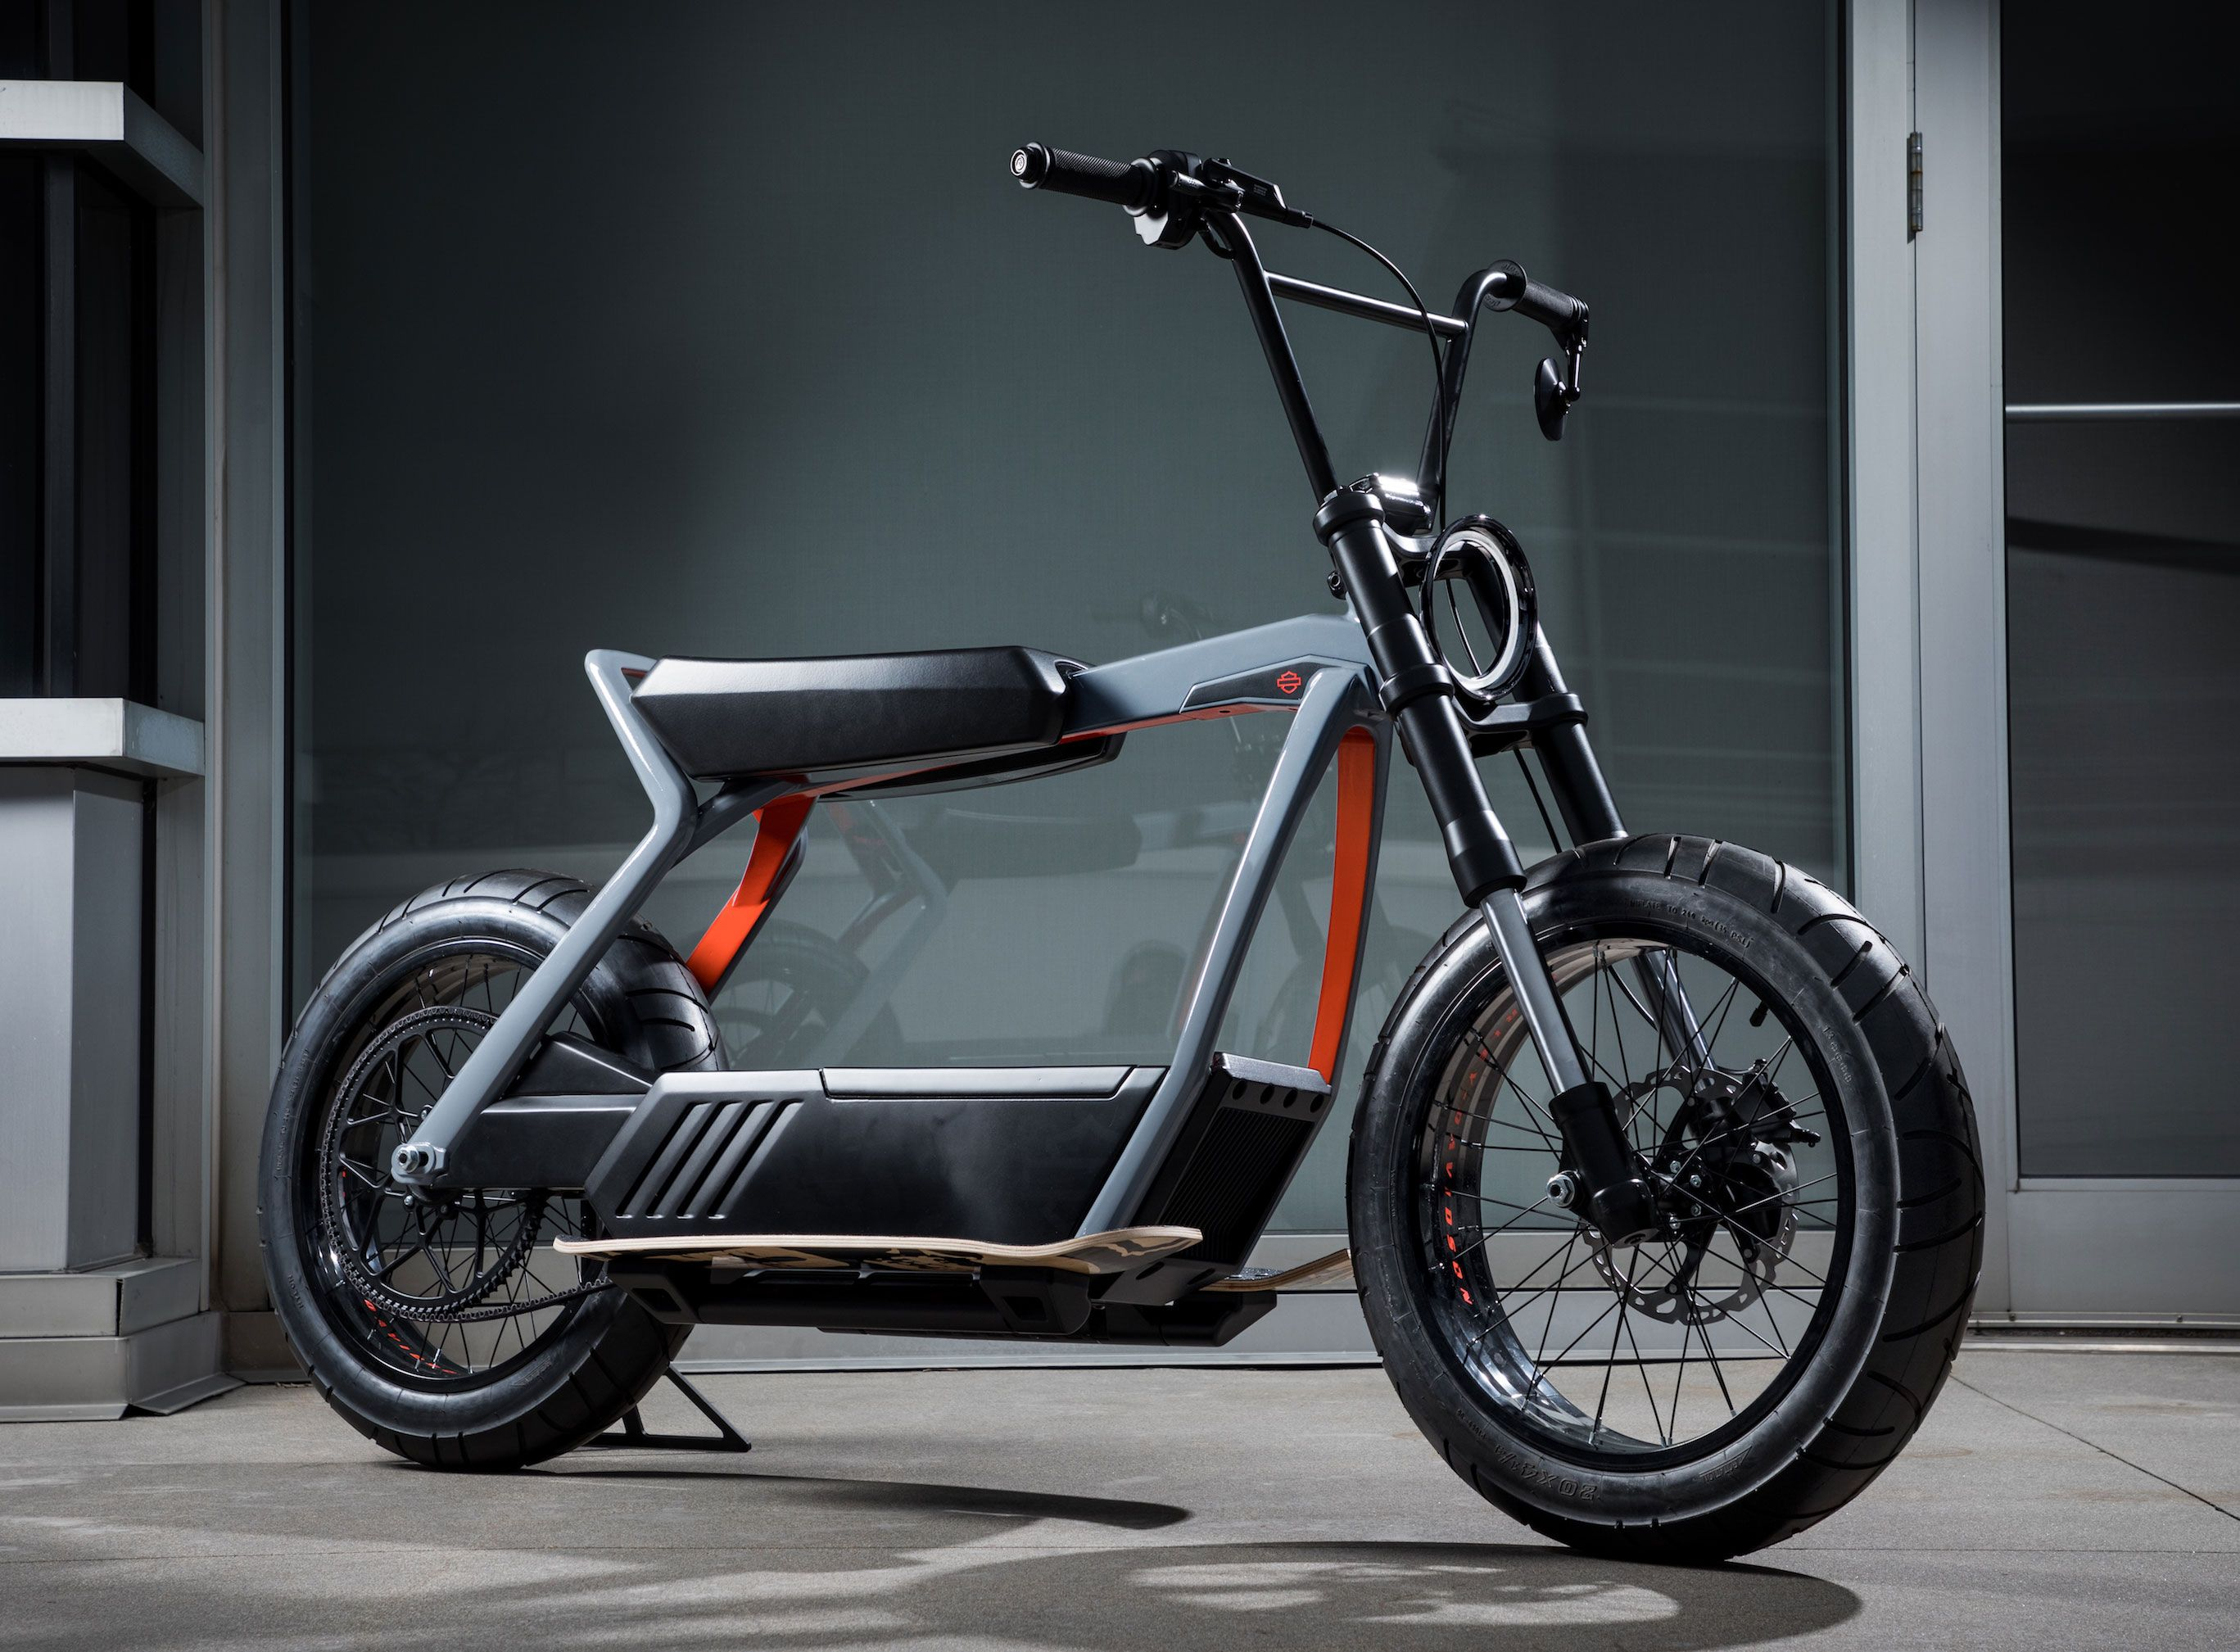 Harley Davidson New 2019 Electric Scrambler And Light Electric Motorcycle Concept Harley Davidson Bisiklet Ve Scooter